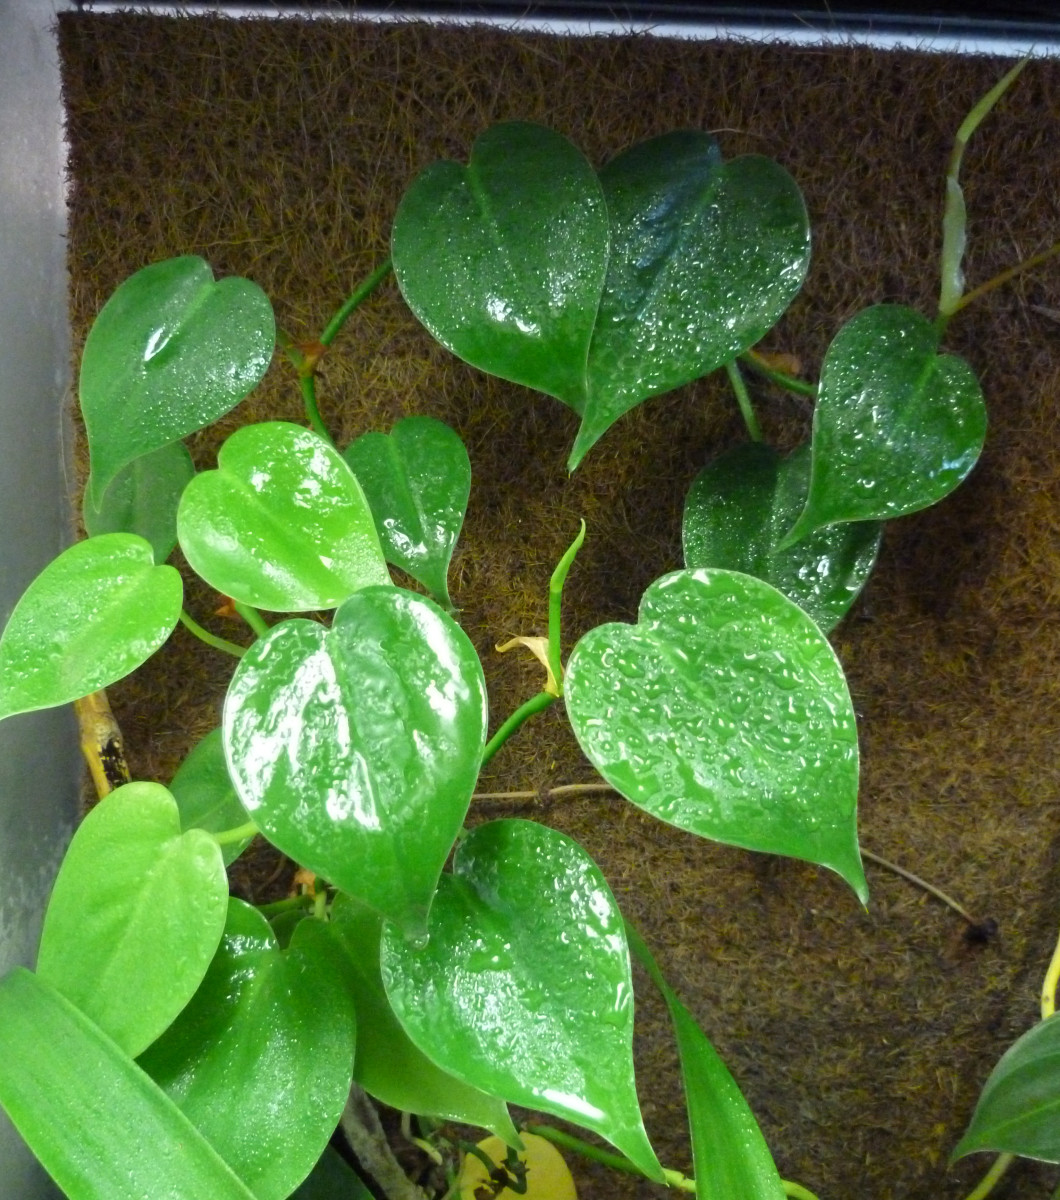 Pressed coconut backgrounds provide a great substrate for climbing vines like pothos.